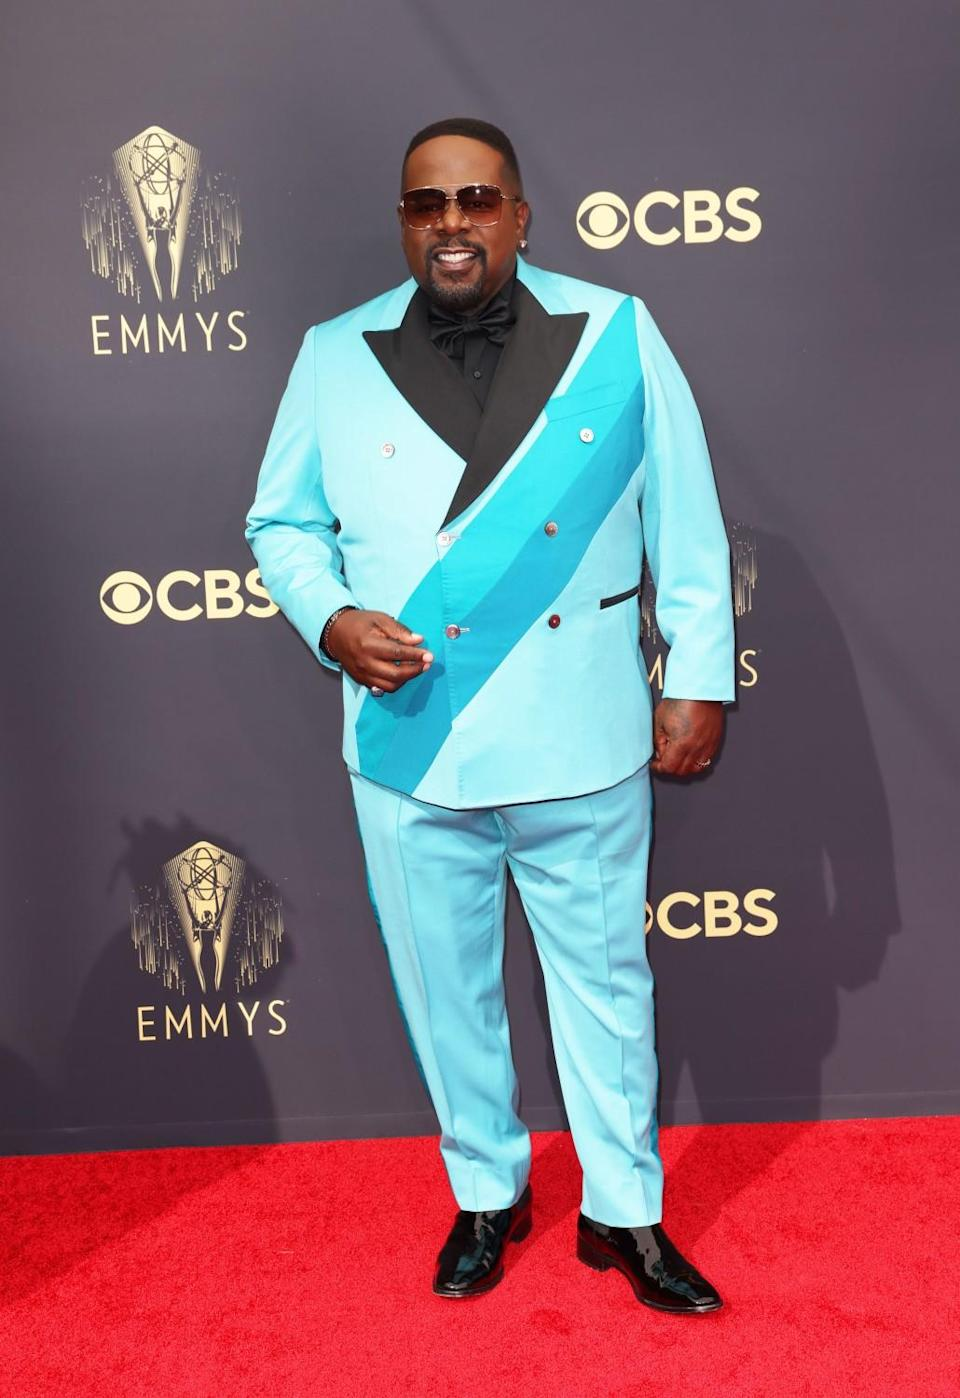 A man on the red carpet in a light-blue suit